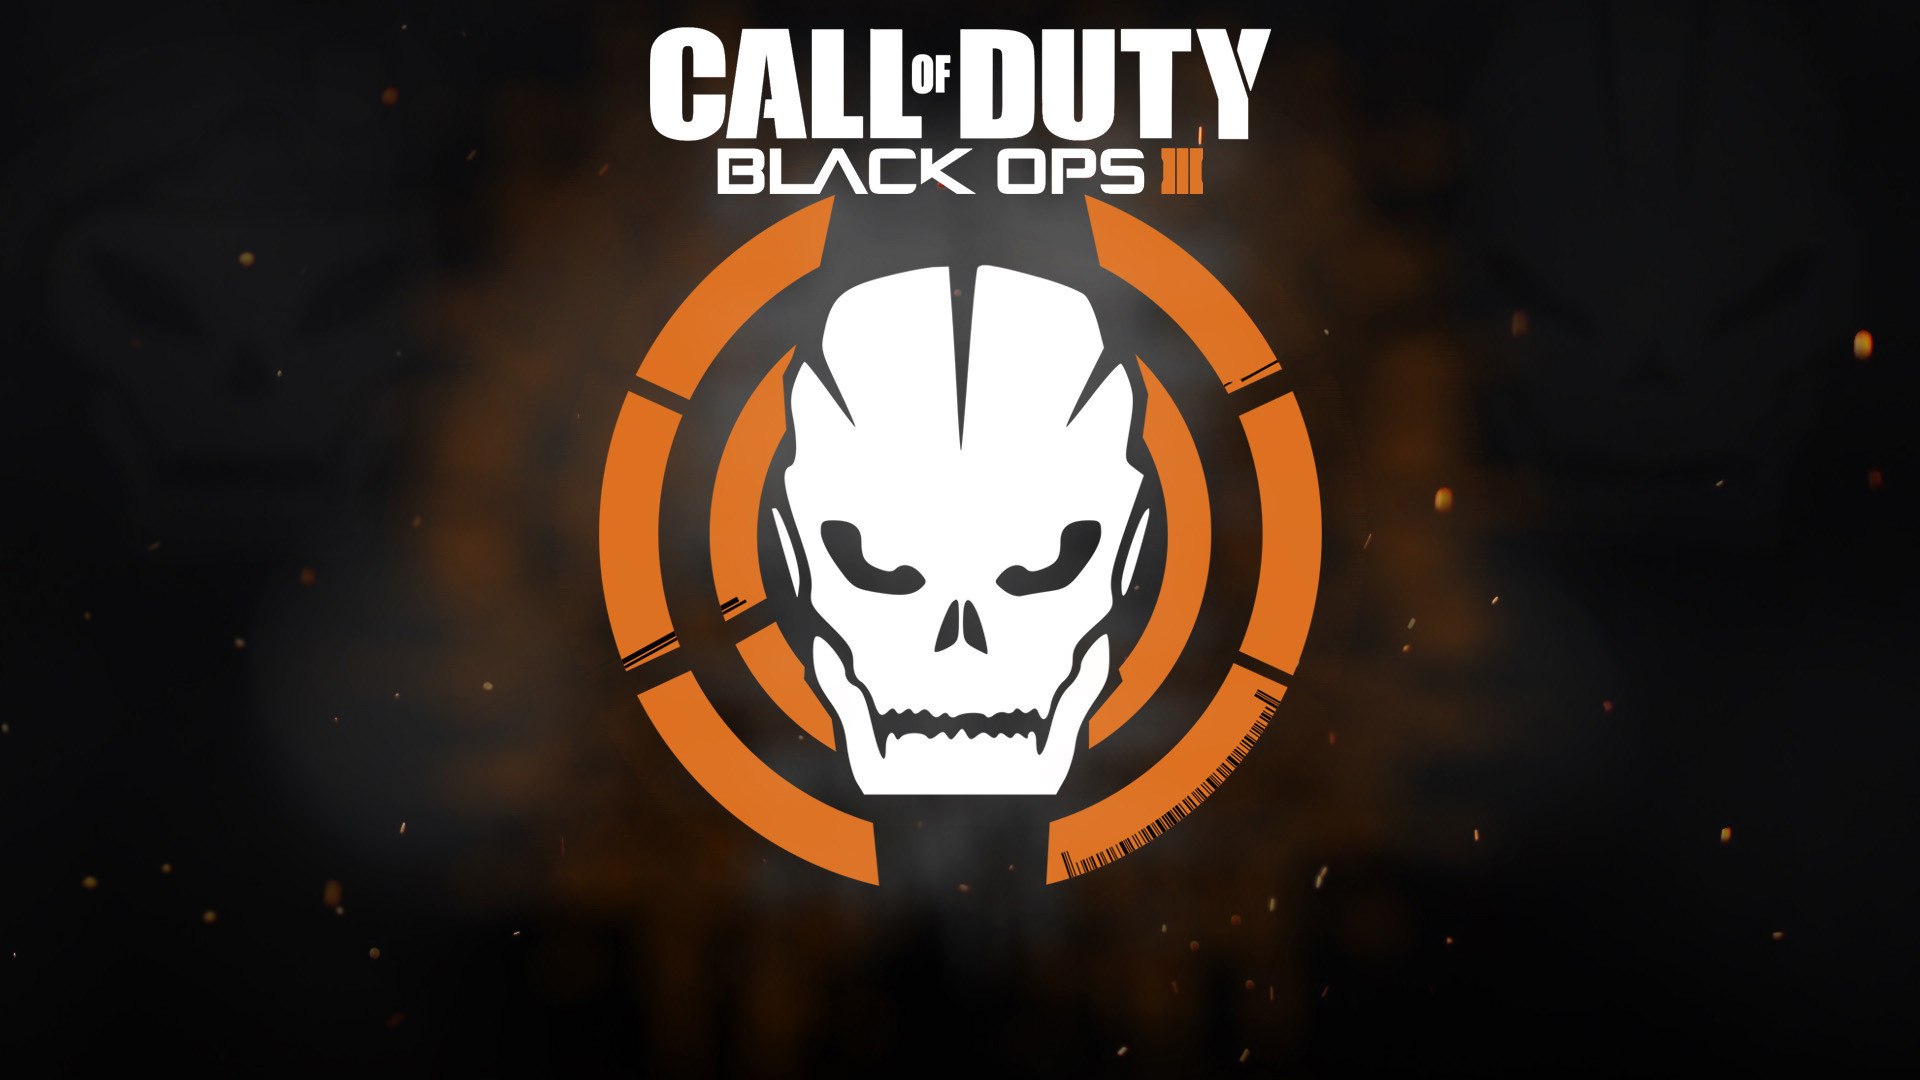 Call of Duty Black Ops 3 Redwood Free For All Gameplay Of The Best Shooting  Game Of Call Of Duty Series.Other related topics are Call of Duty Black Ops  3 …